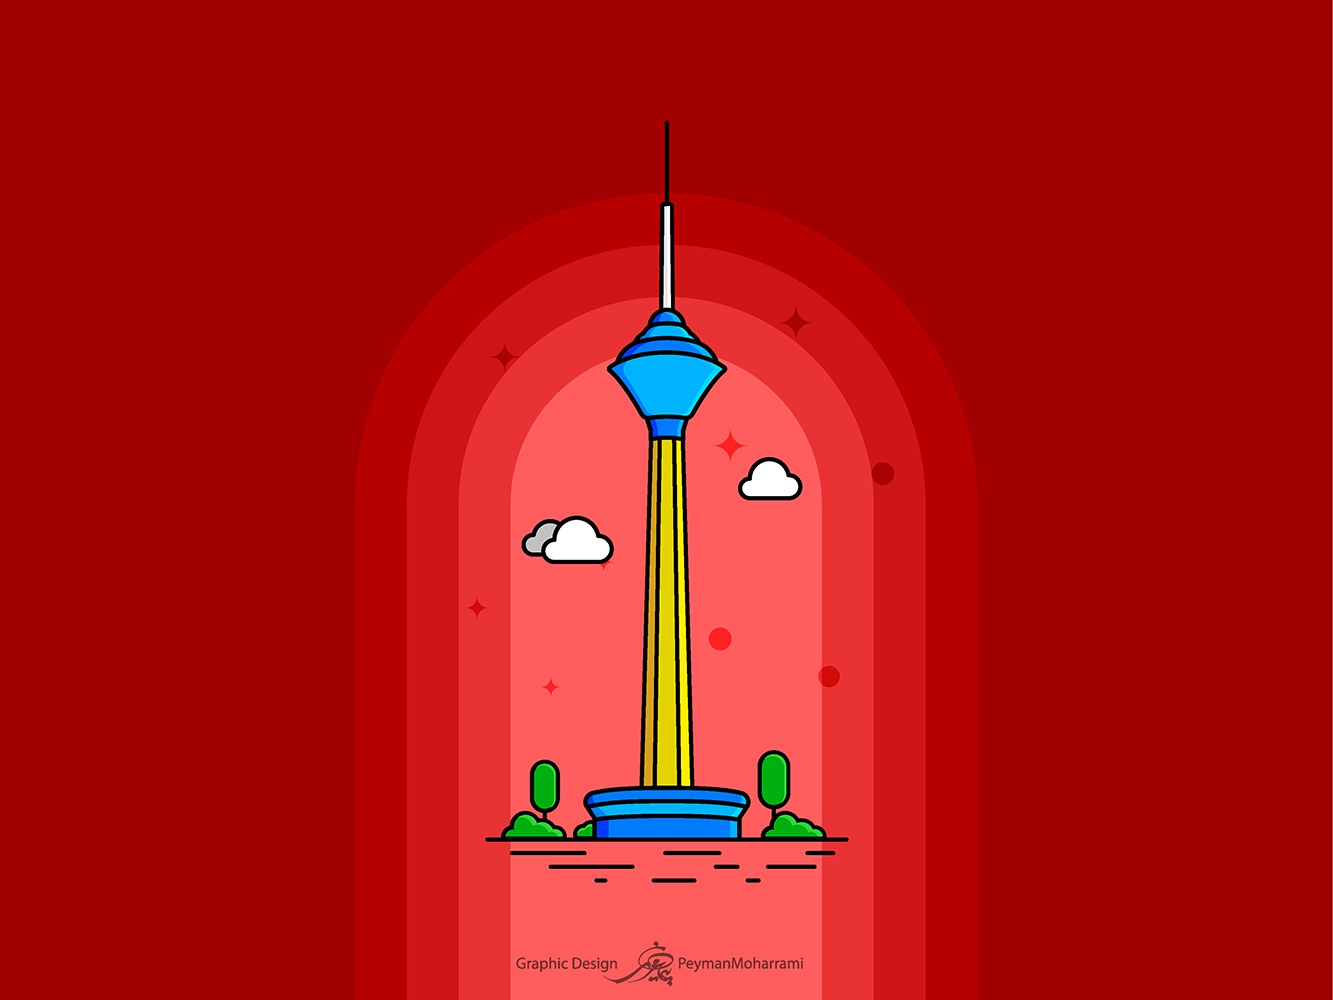 Milad Tower milad milad tower branding tower bridge abstract tower icon vector illustration design illustration agency illustrator illustration art graphic flat logo illustration design art adobe